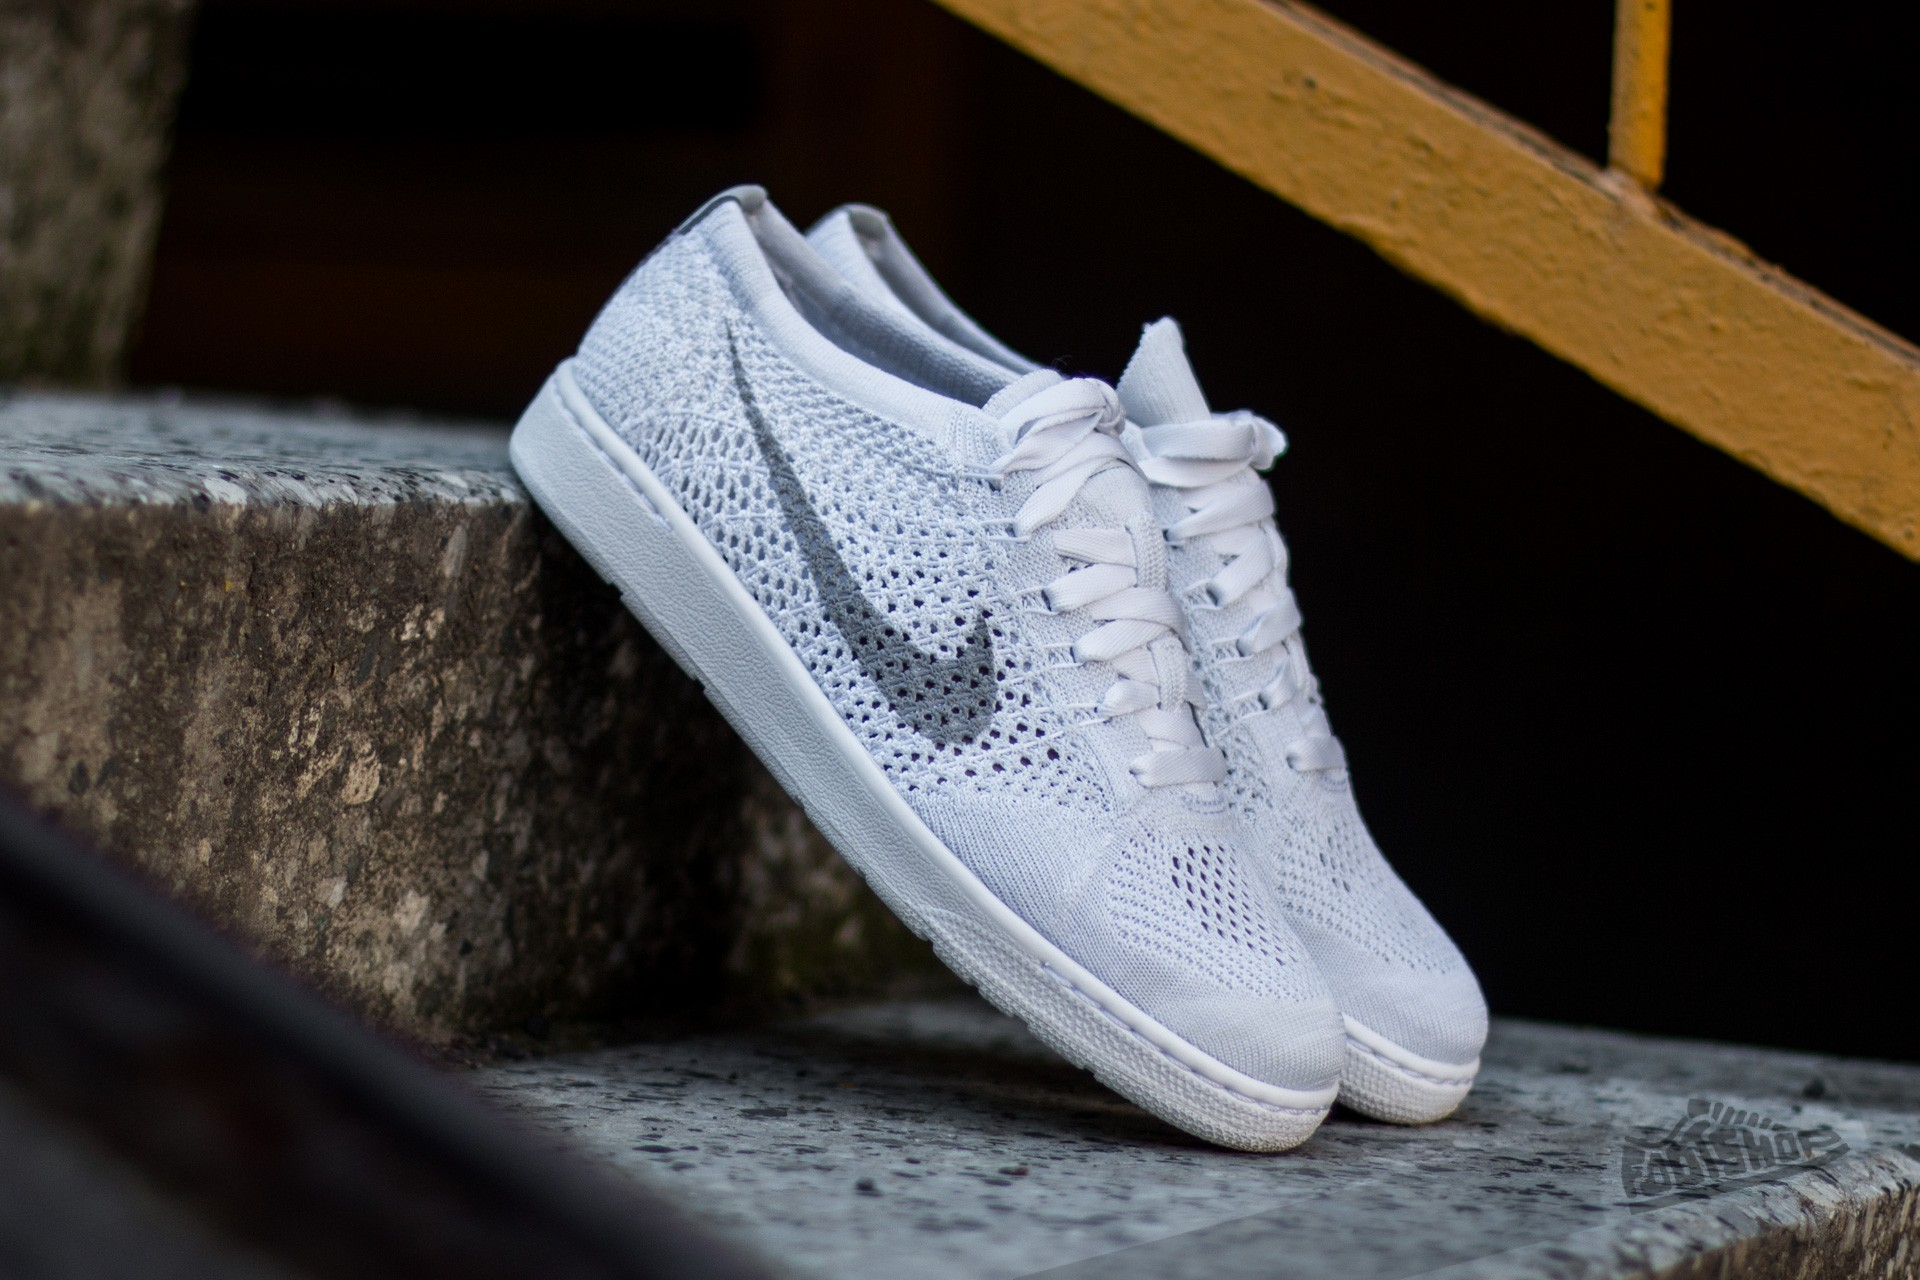 Chaussures et baskets femme Nike W Tennis Classic Ultra Flyknit White/ Wolf Grey